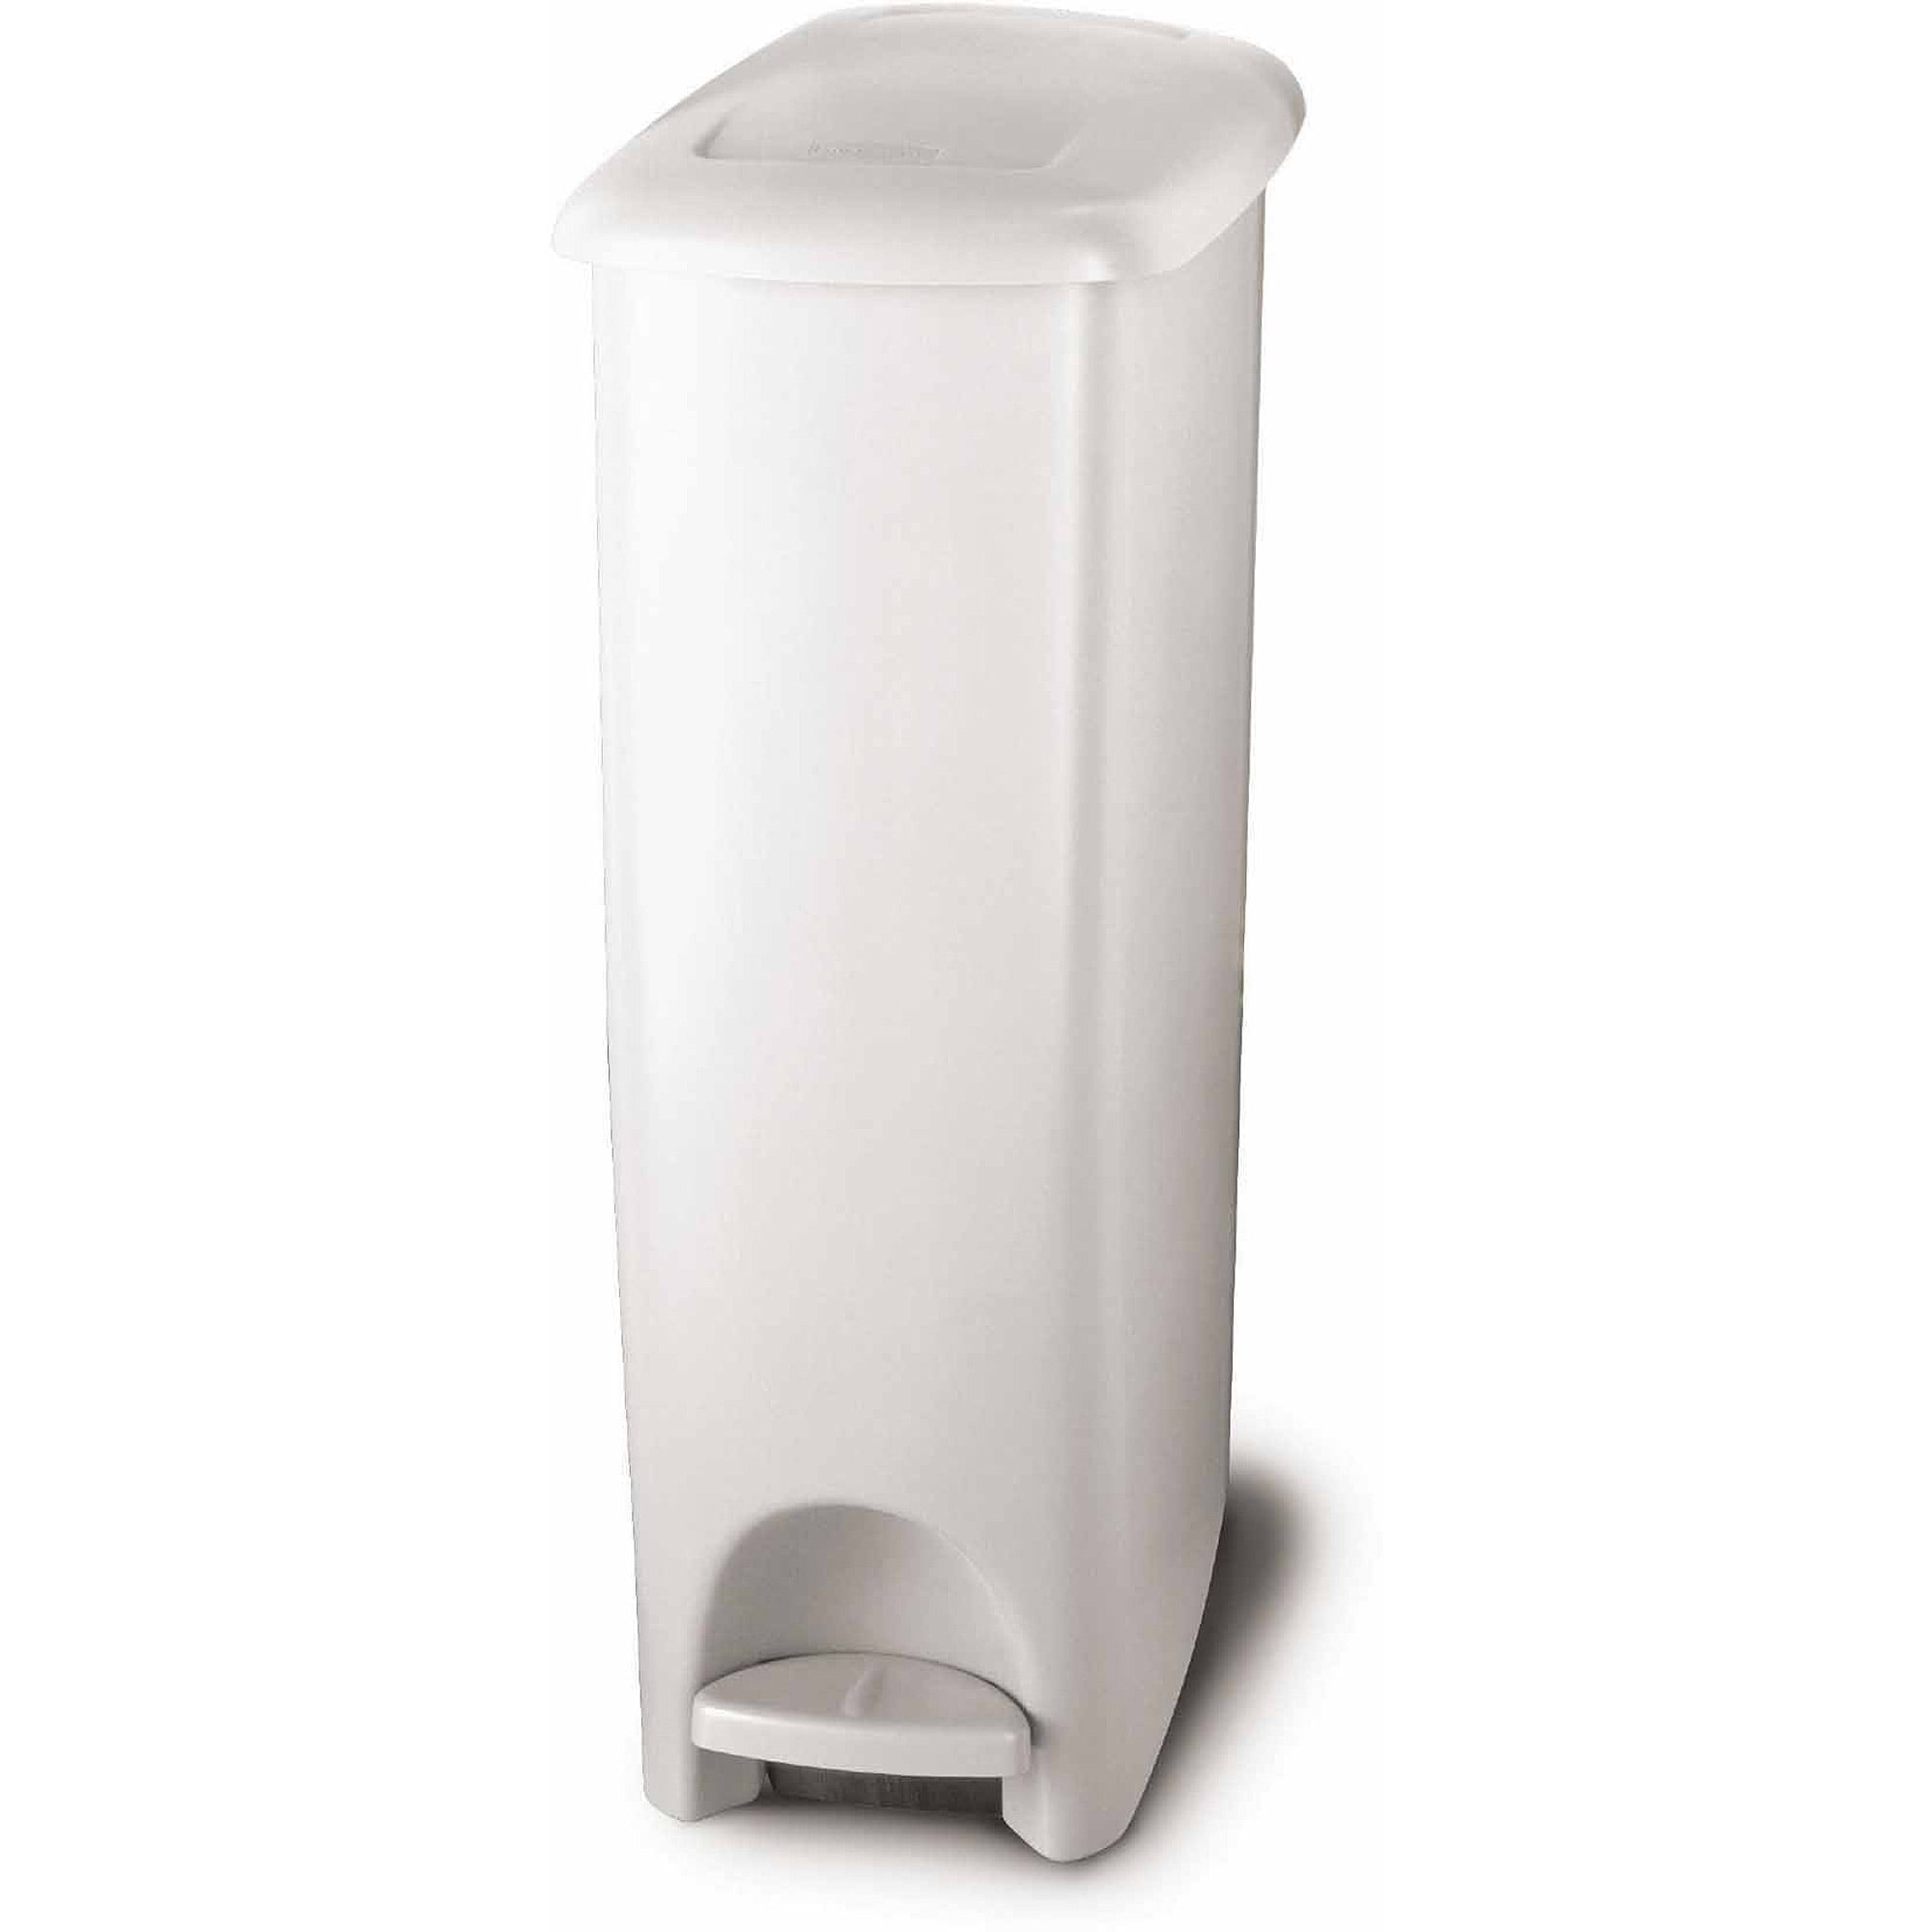 rubbermaid trash cans & recycle bins - walmart